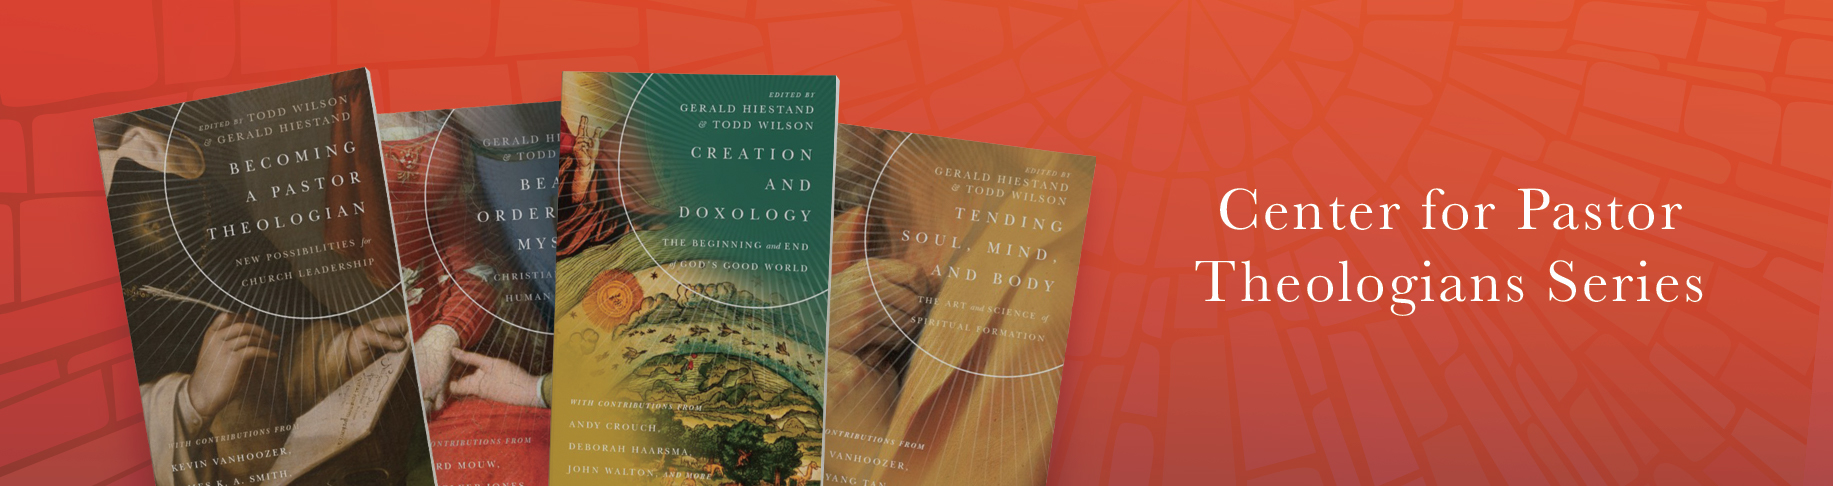 Center for Pastor Theologians Series